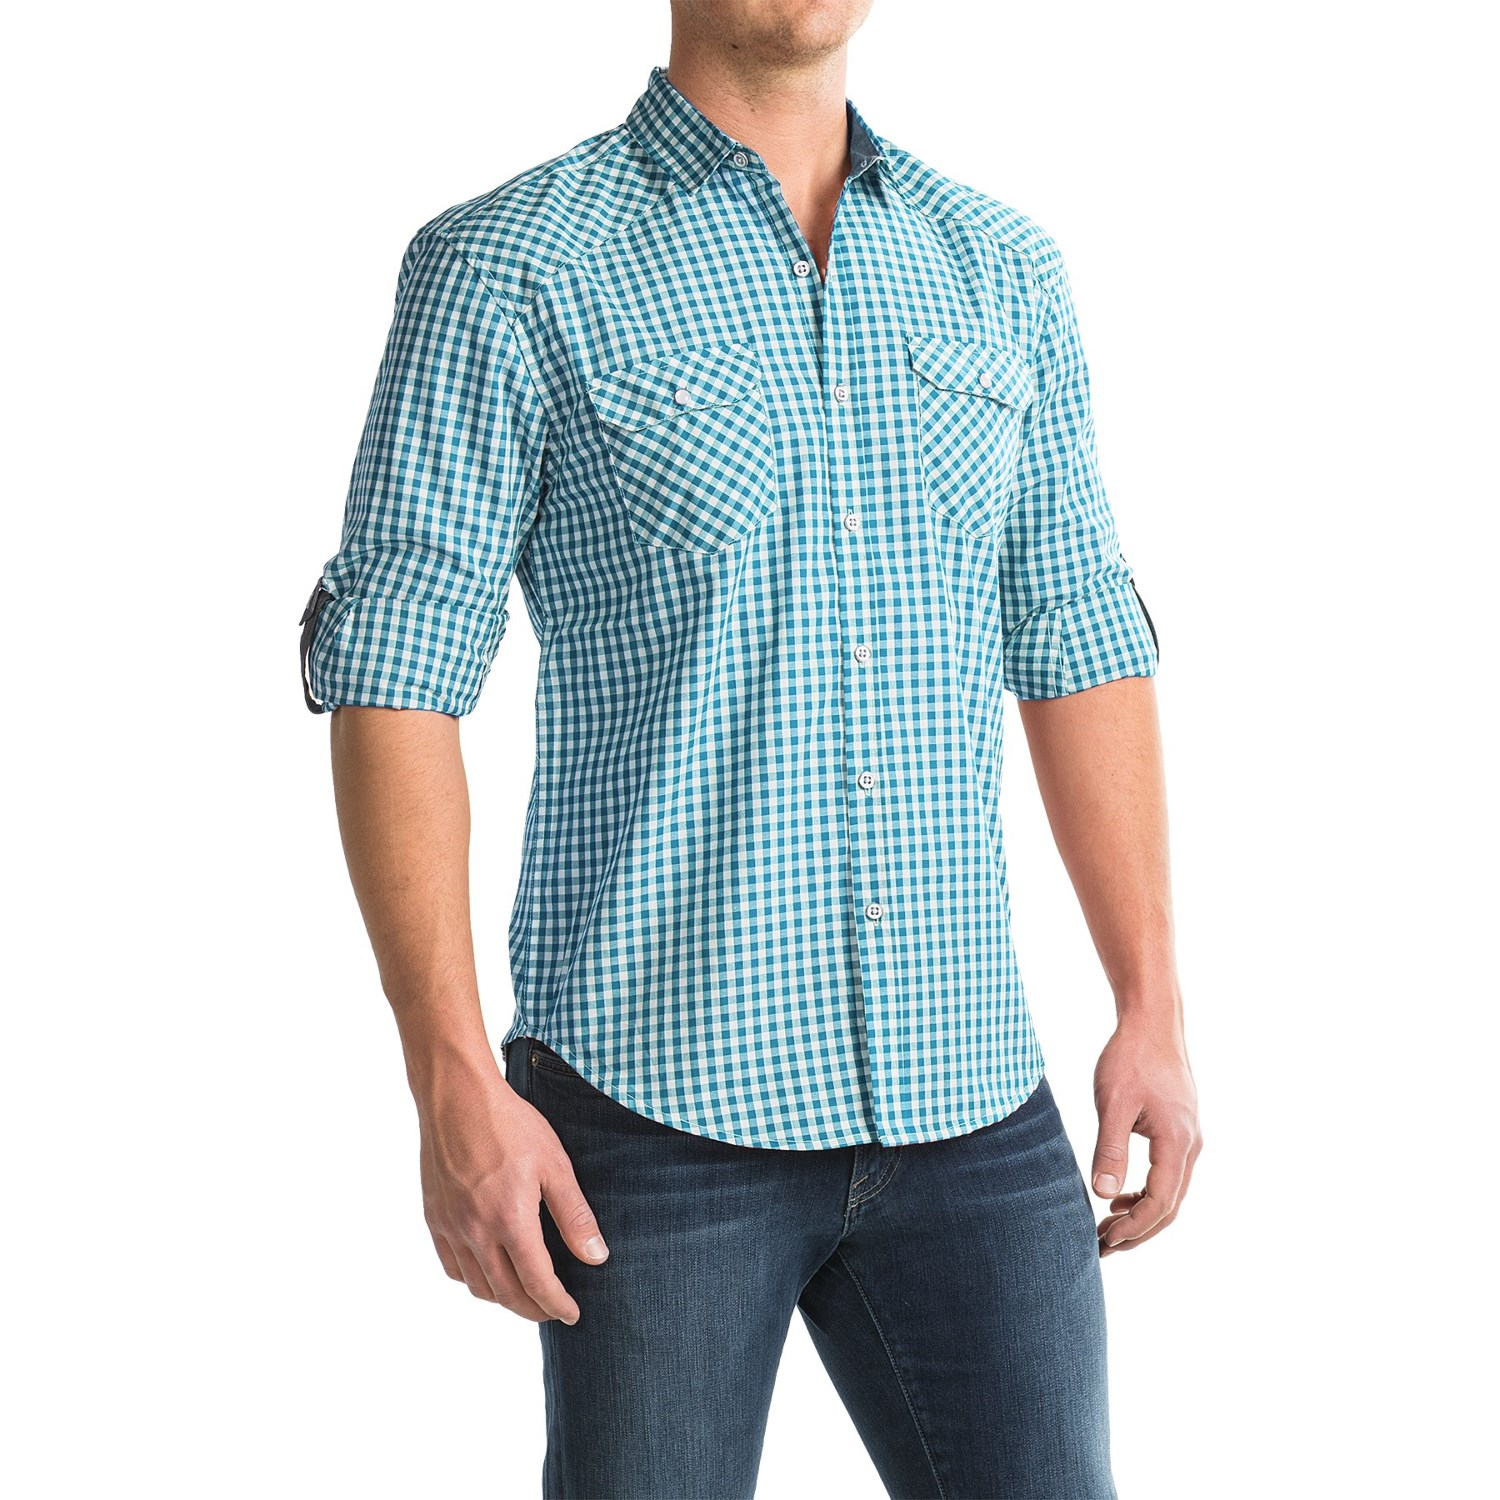 Bruno Gingham Button-Up Shirt (For Men) - Save 76%